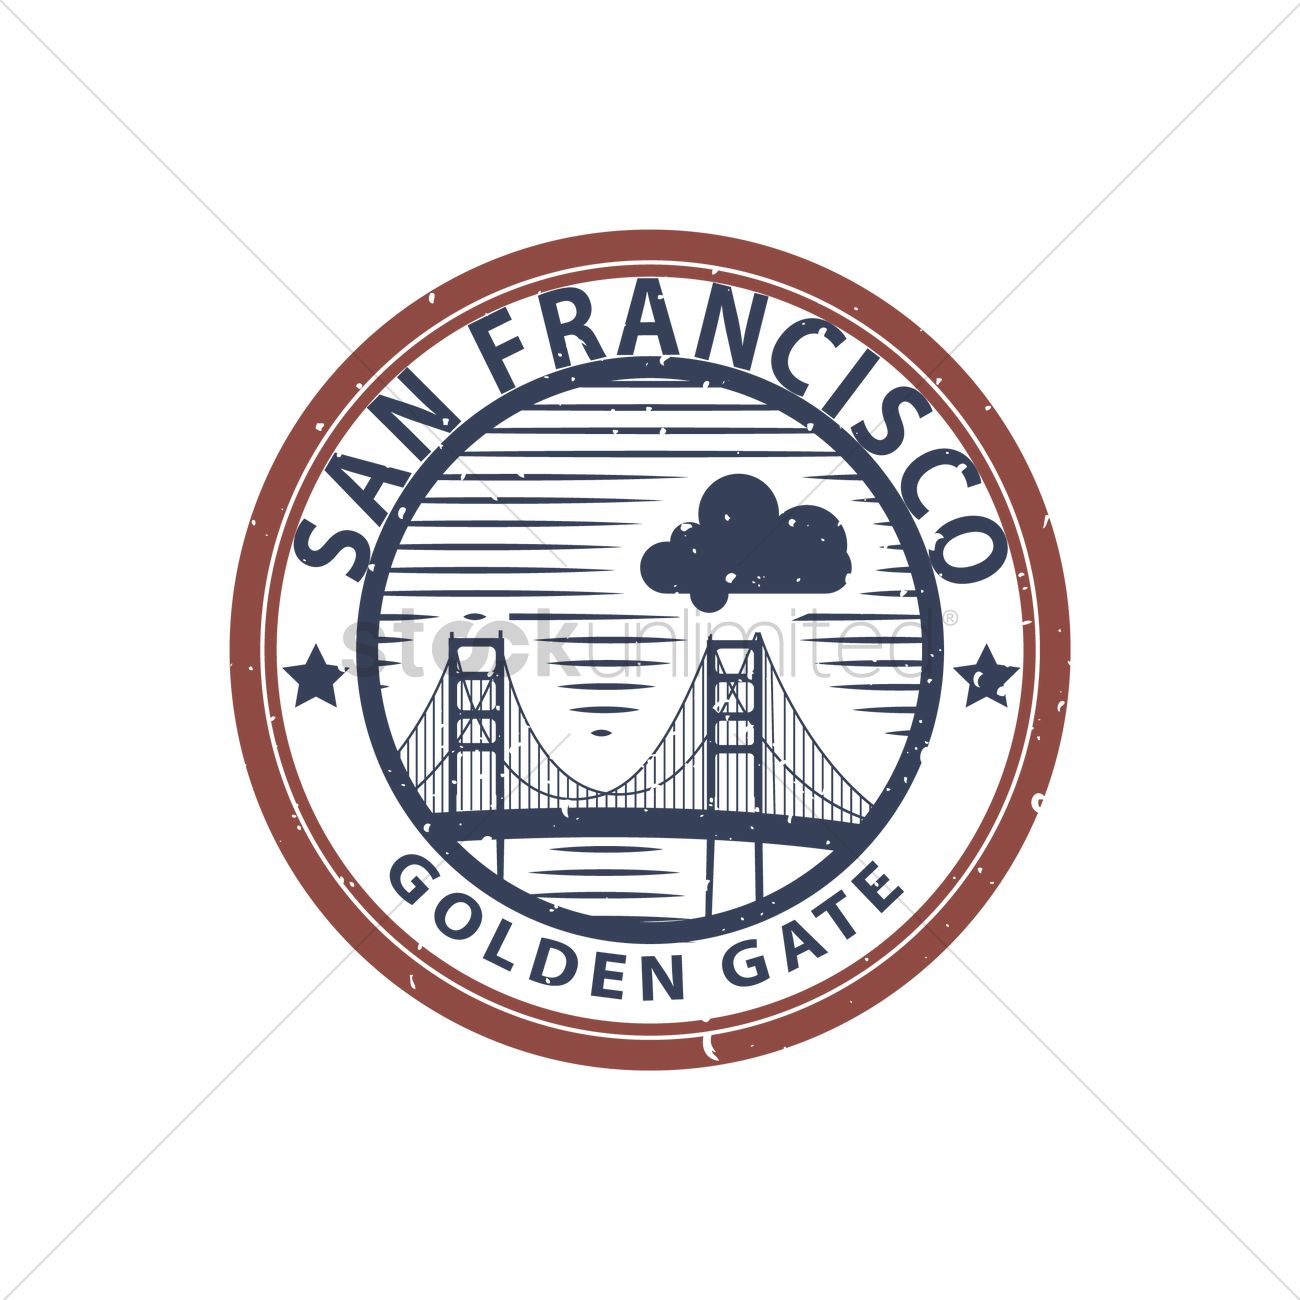 Golden Gate Bridge Vector Image 1567630 Stockunlimited Diagram Of The Graphic